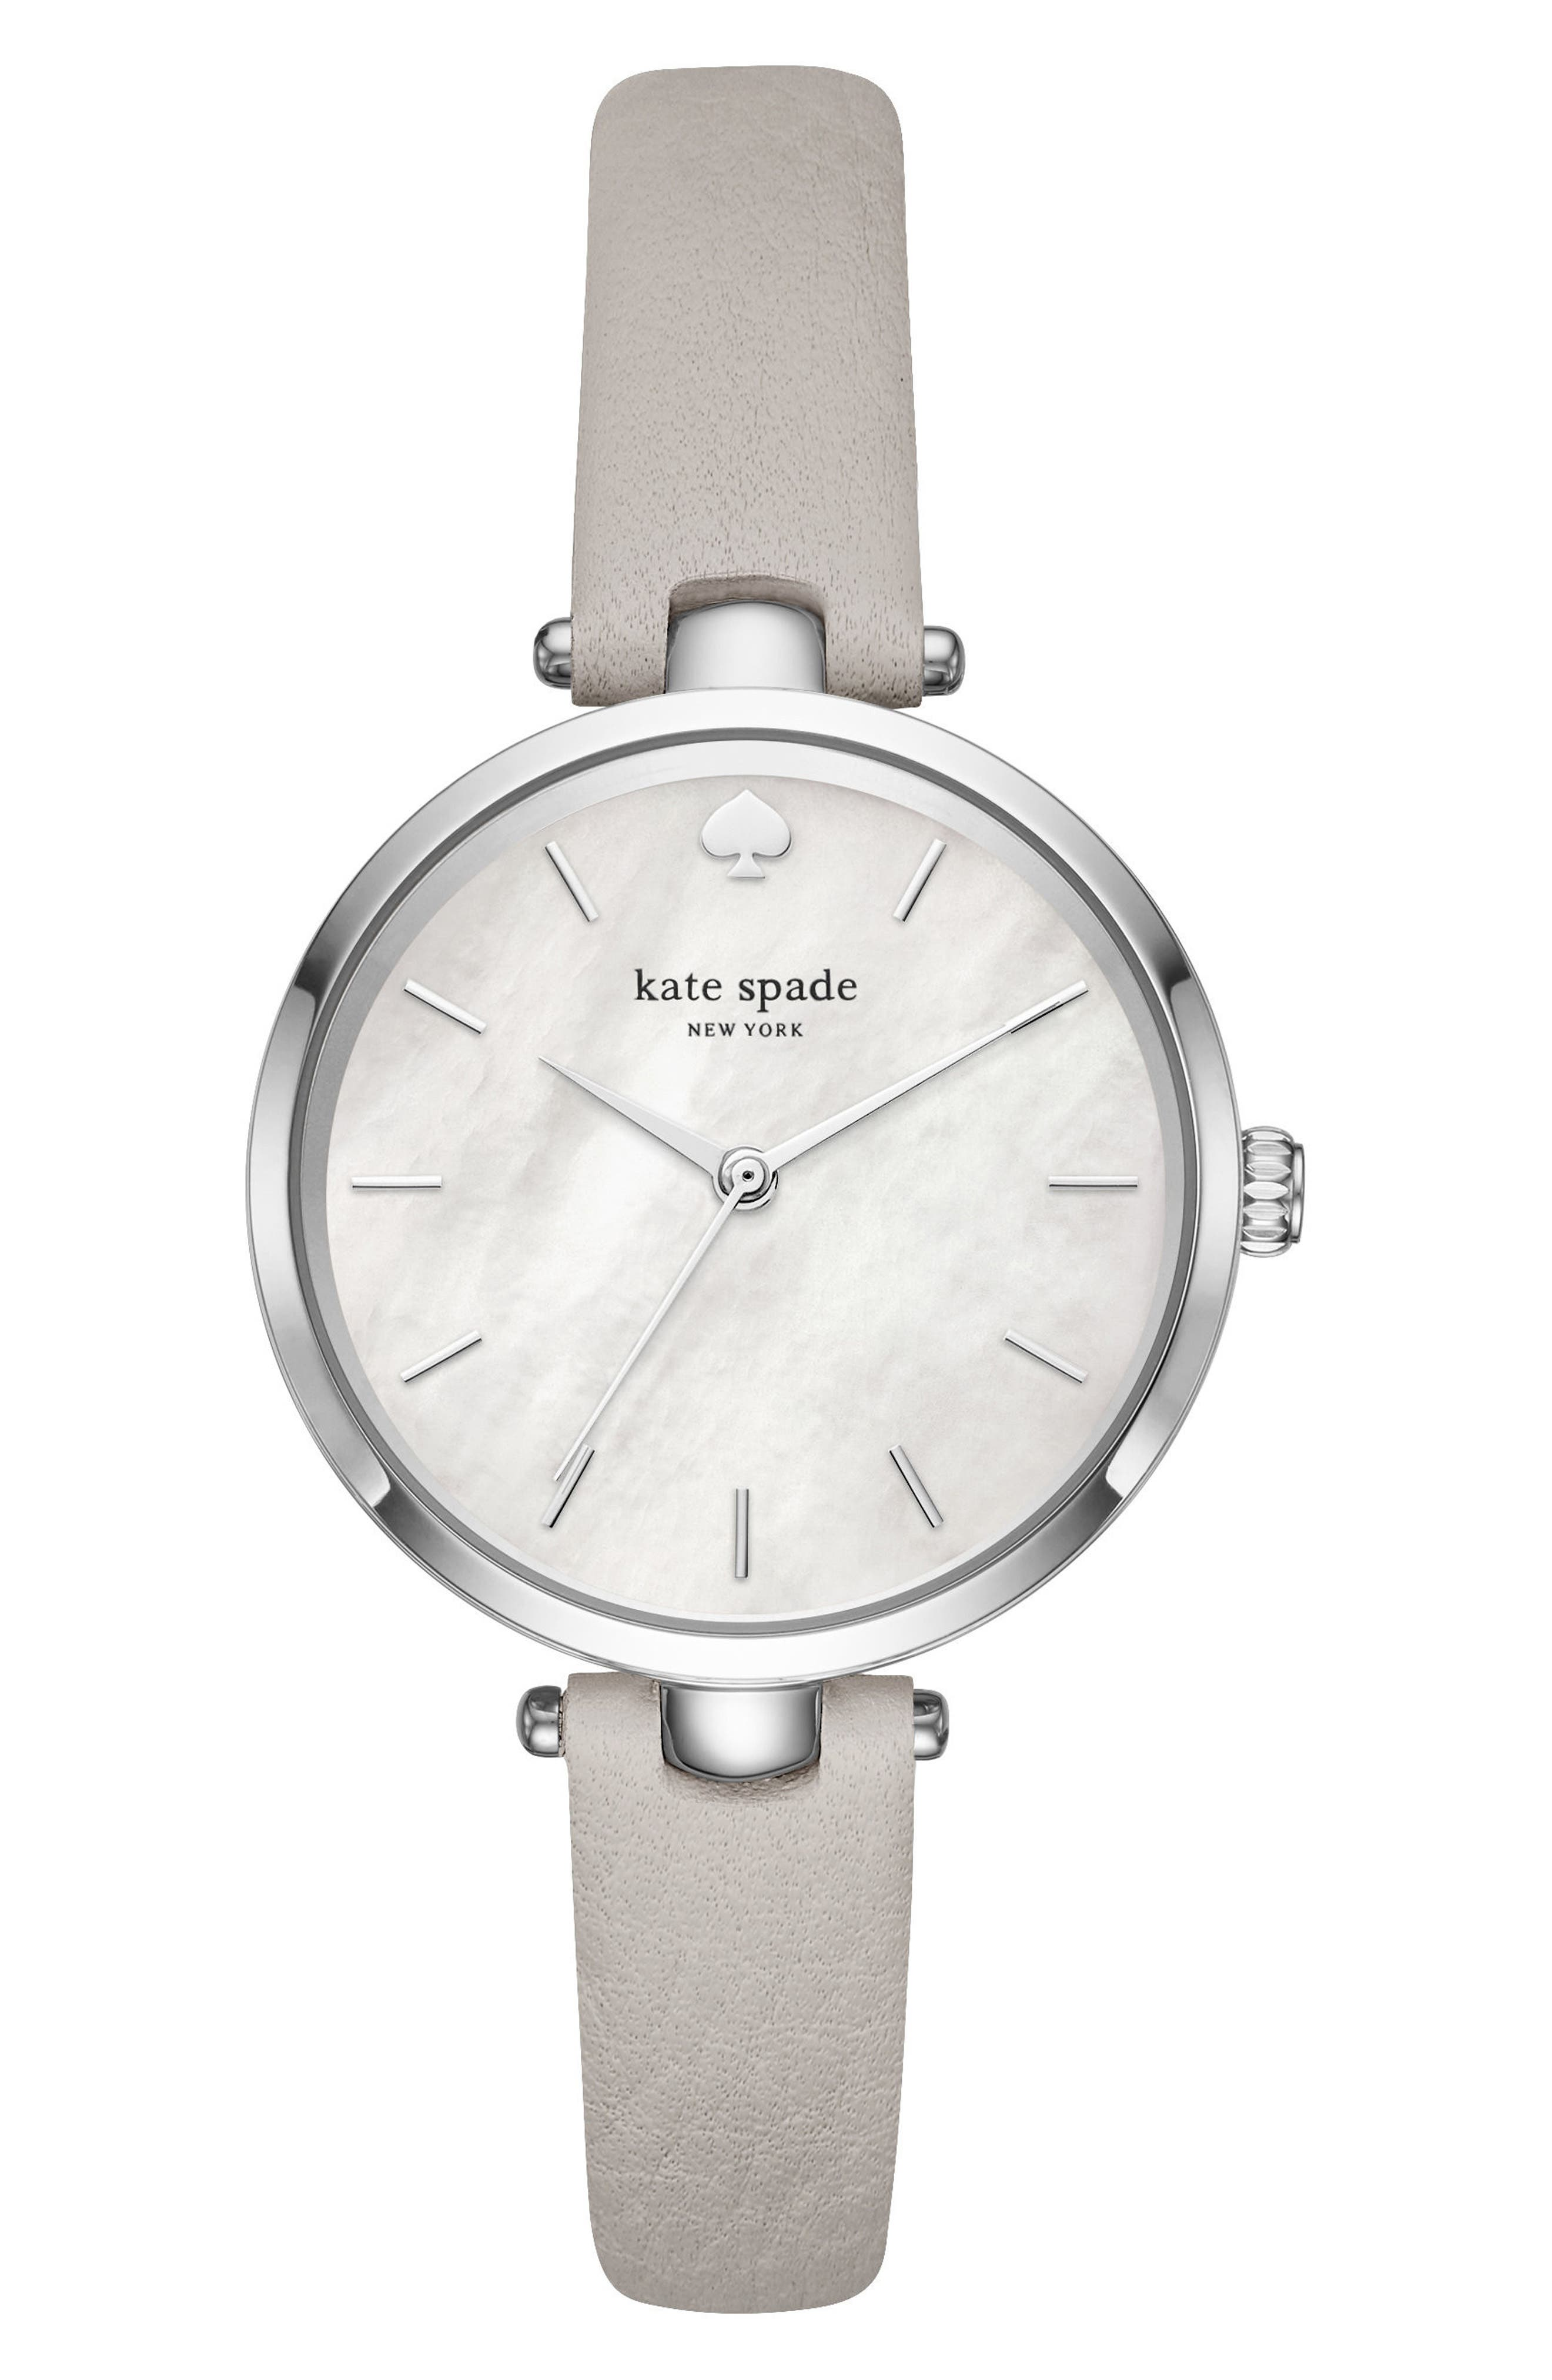 kate spade new york holland leather strap watch gift set, 34mm